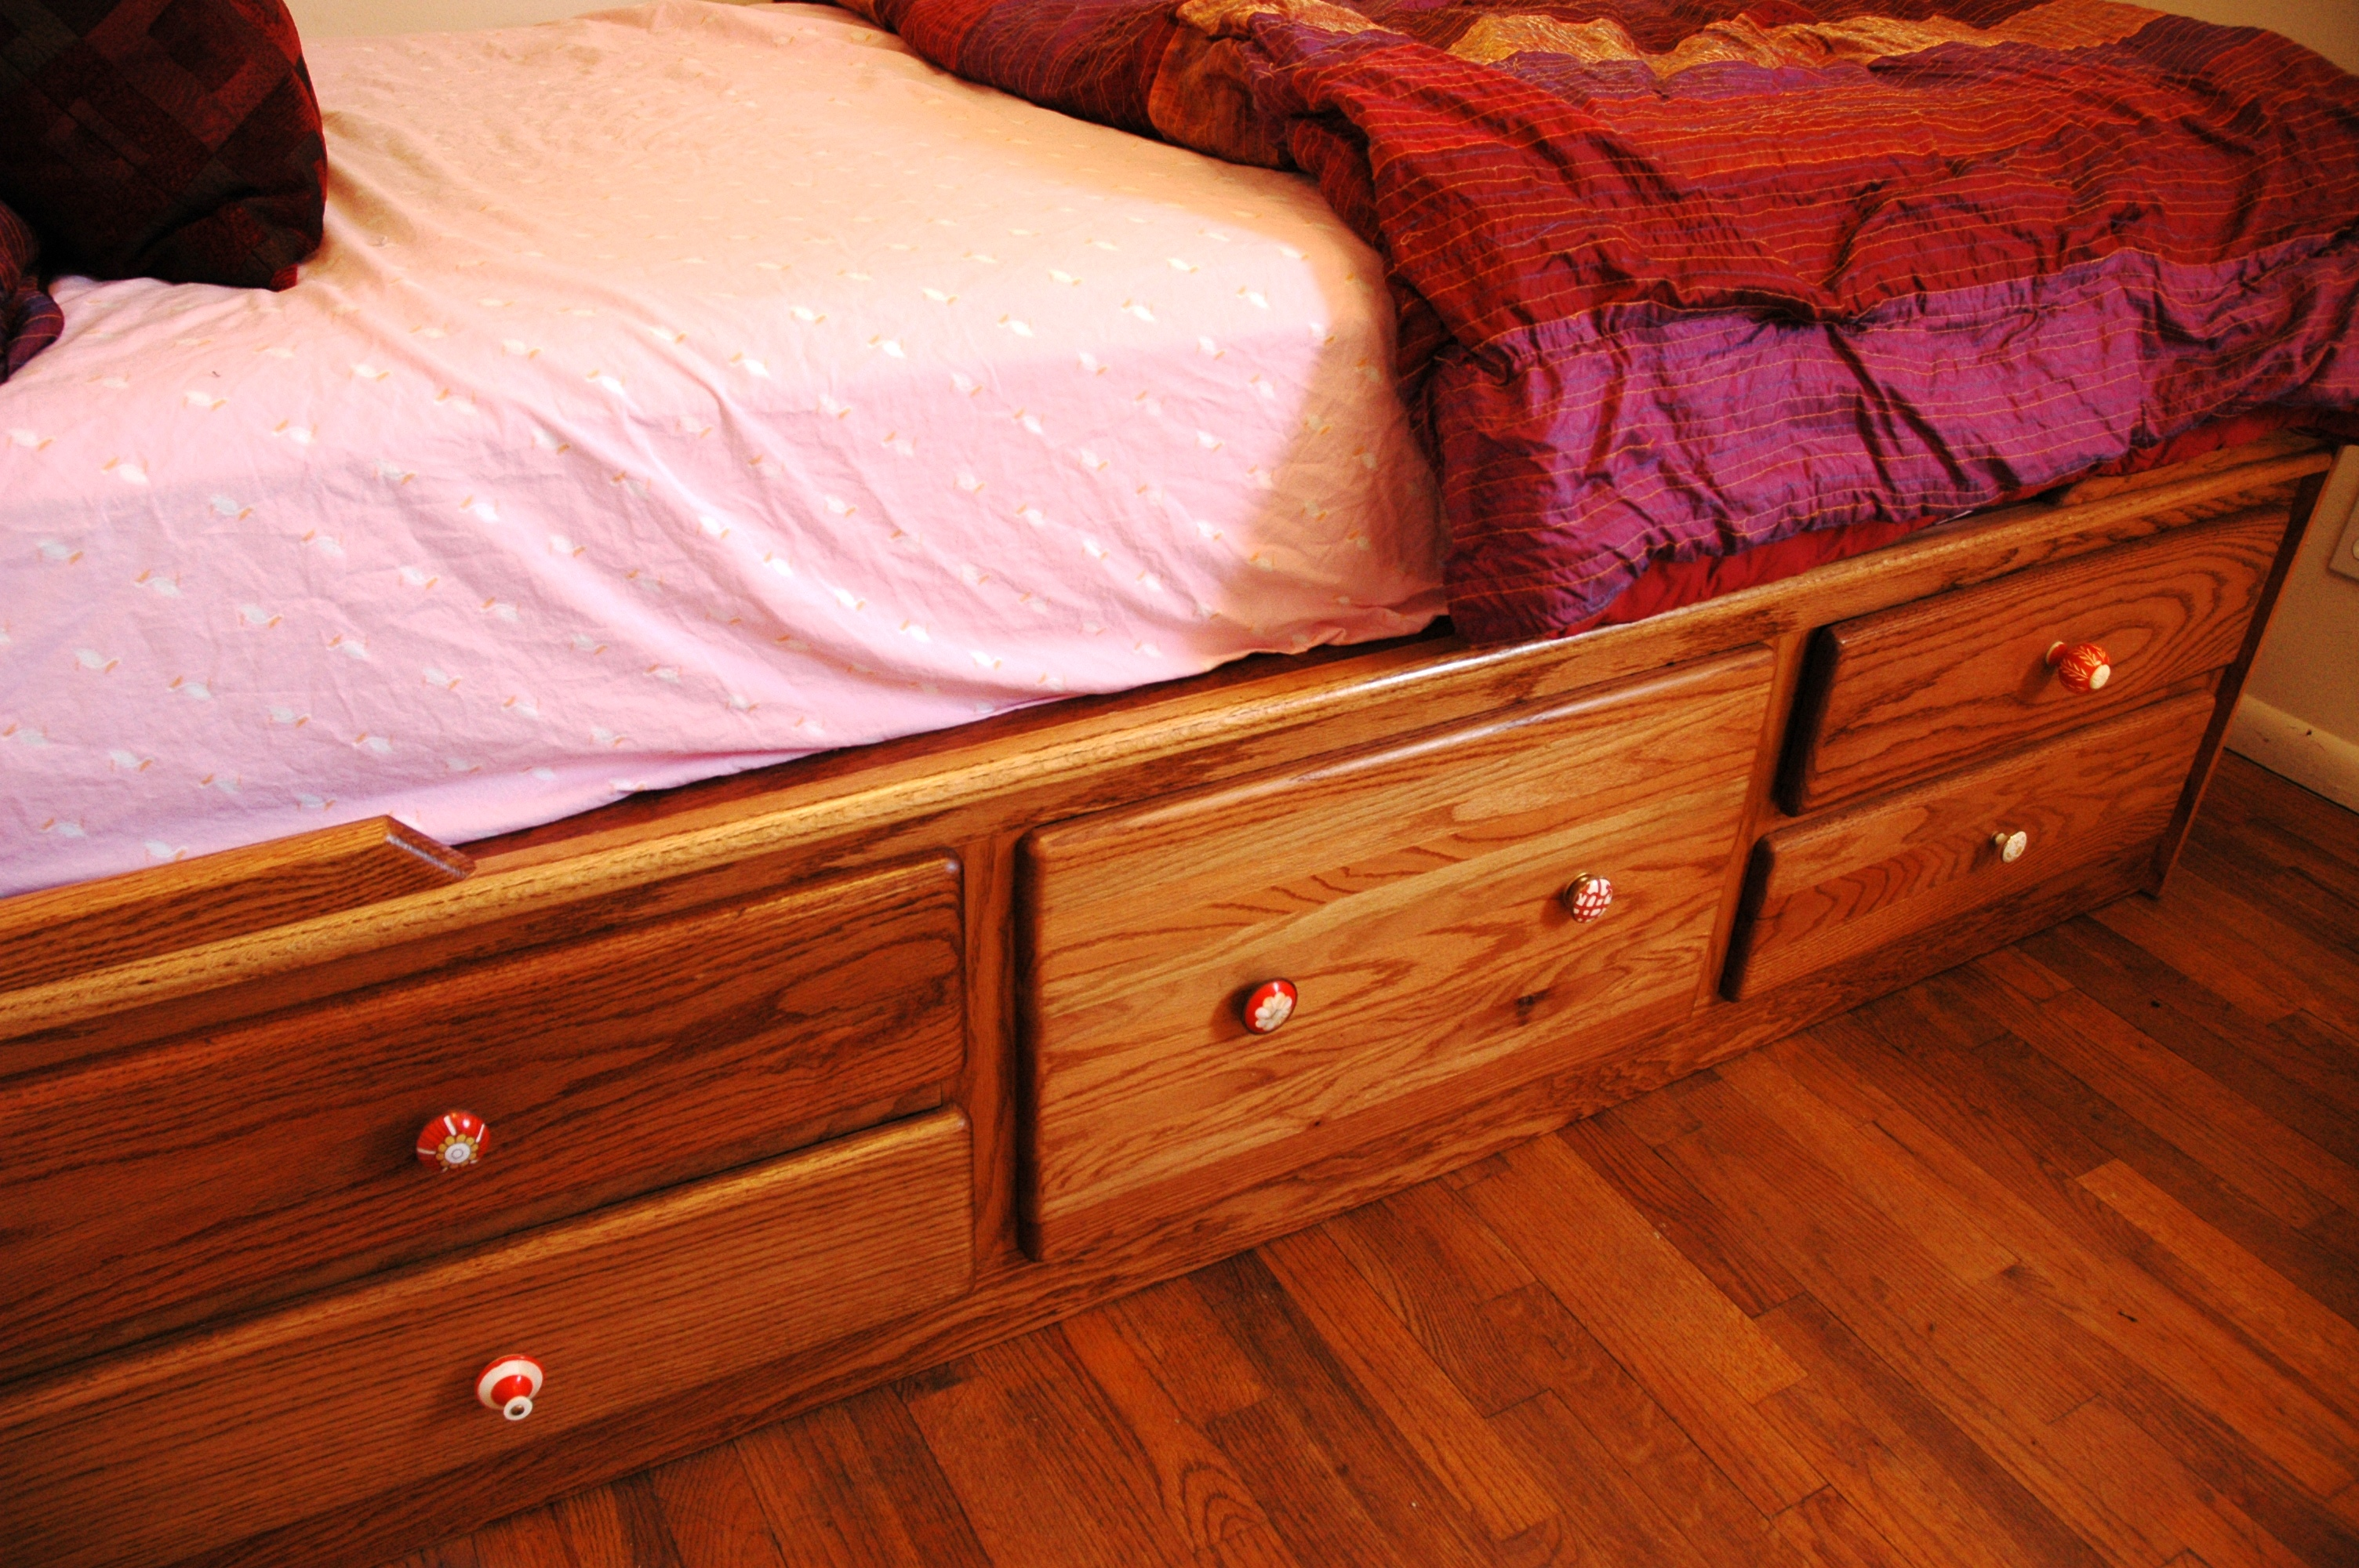 6 Ideas to Open Up a Tiny Bedroom Space - Under the Bed Storage